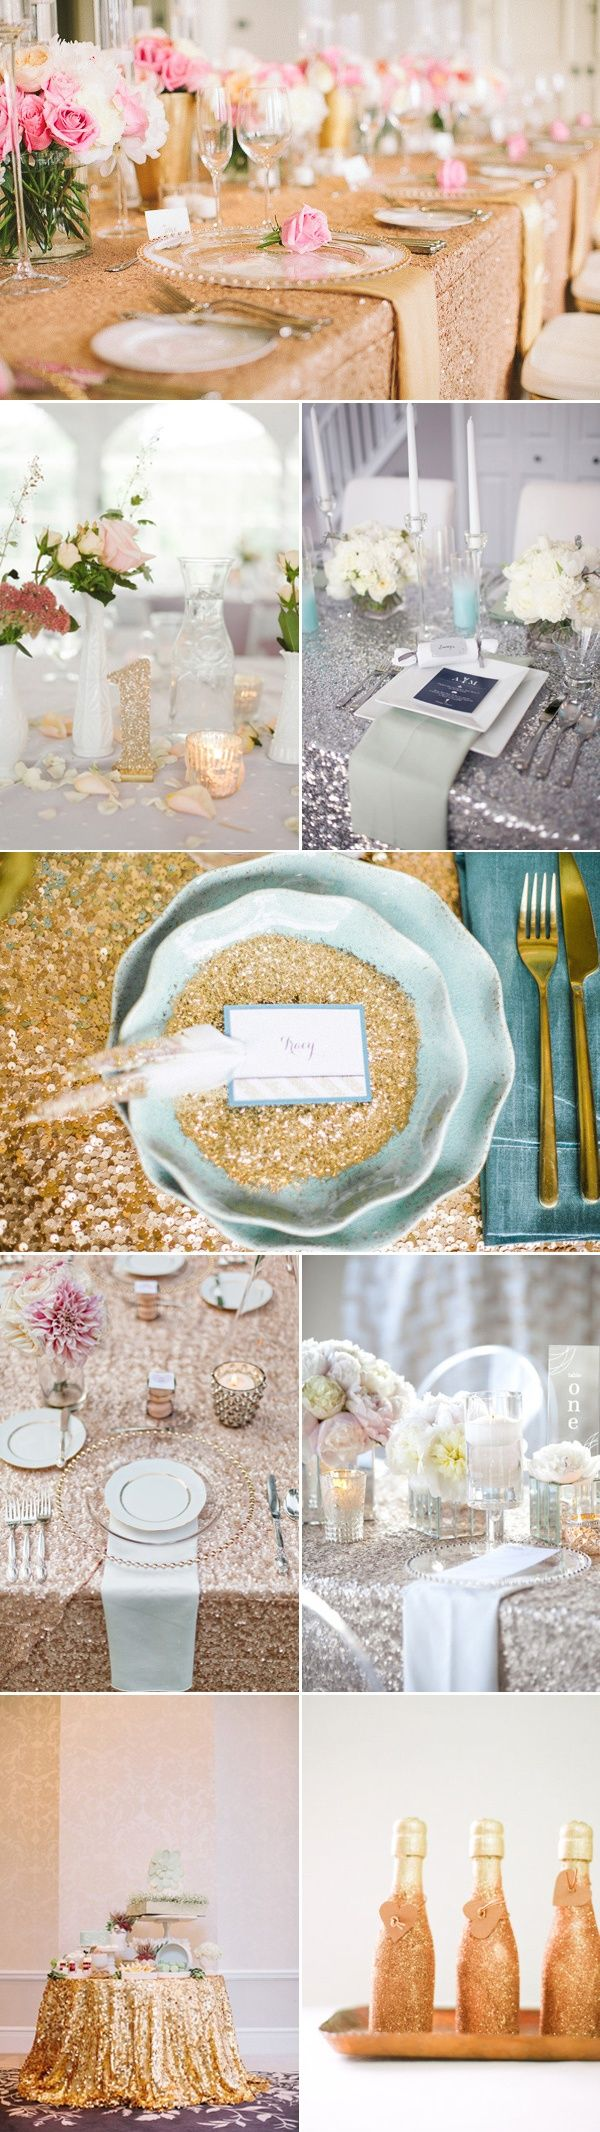 GLITTER weddings! Hyde Park Bridal\'s favorite! | Wedding Inspiration ...